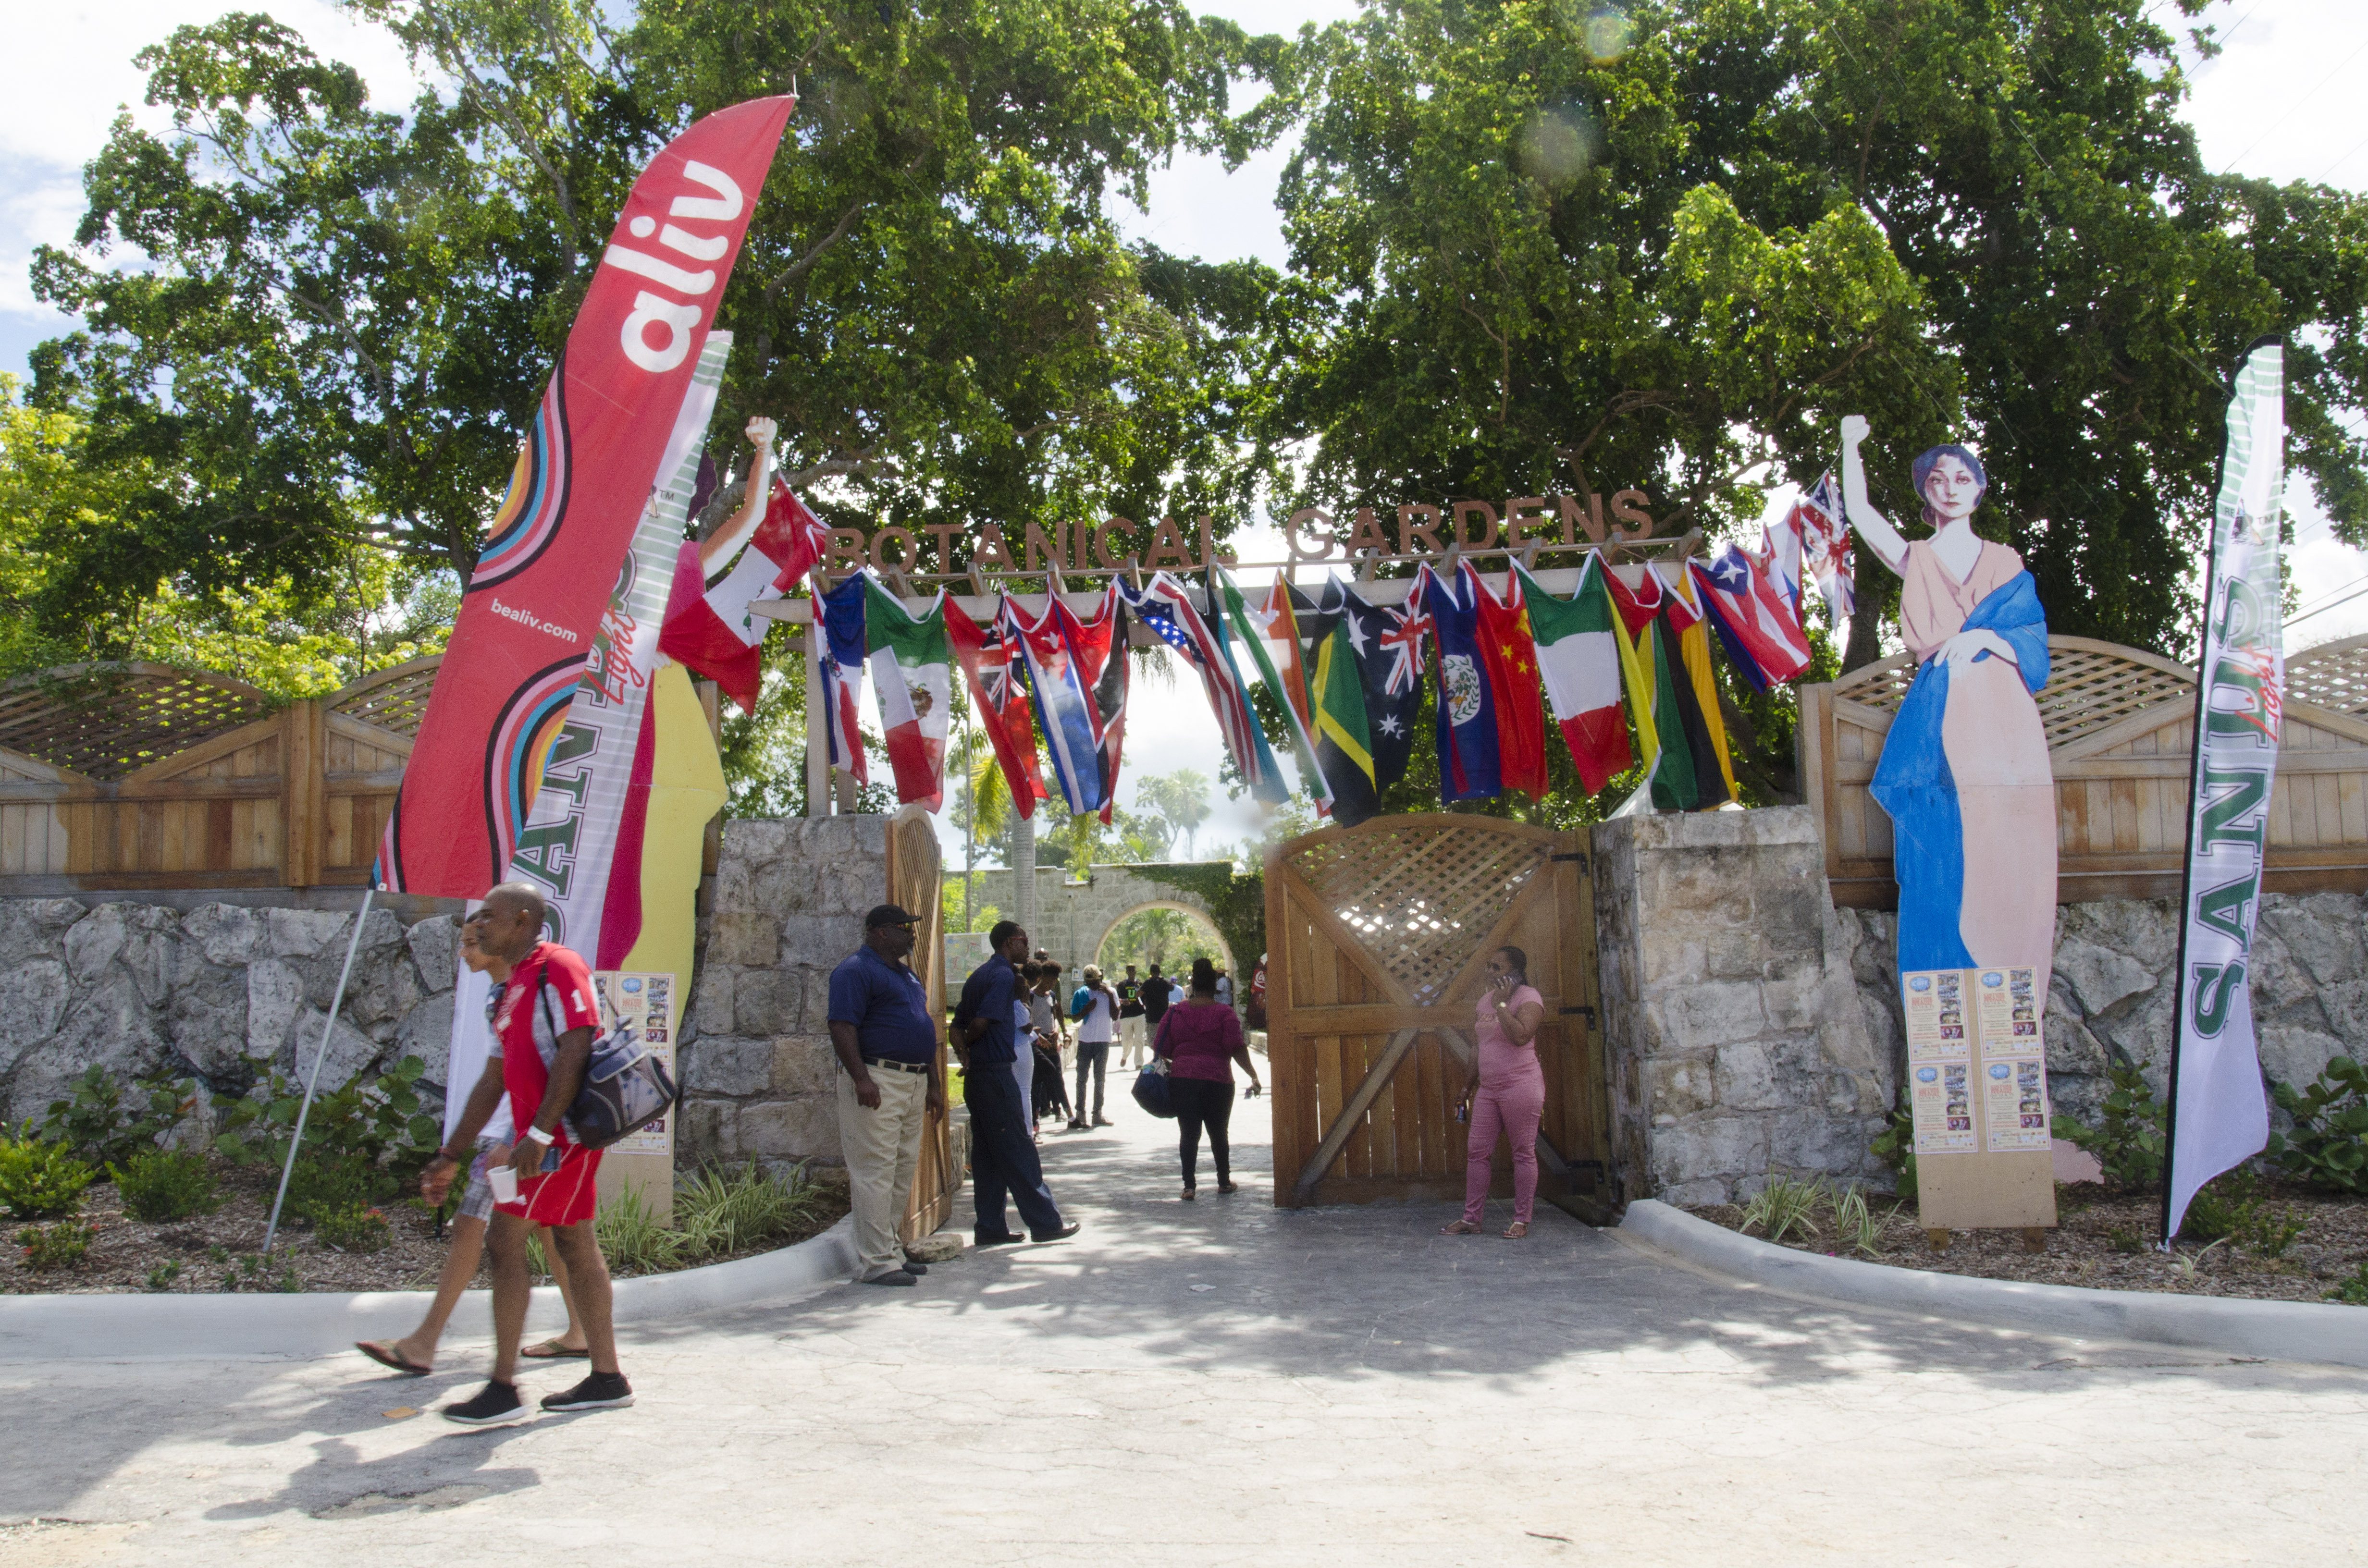 Entrance to the International Cultural Festival